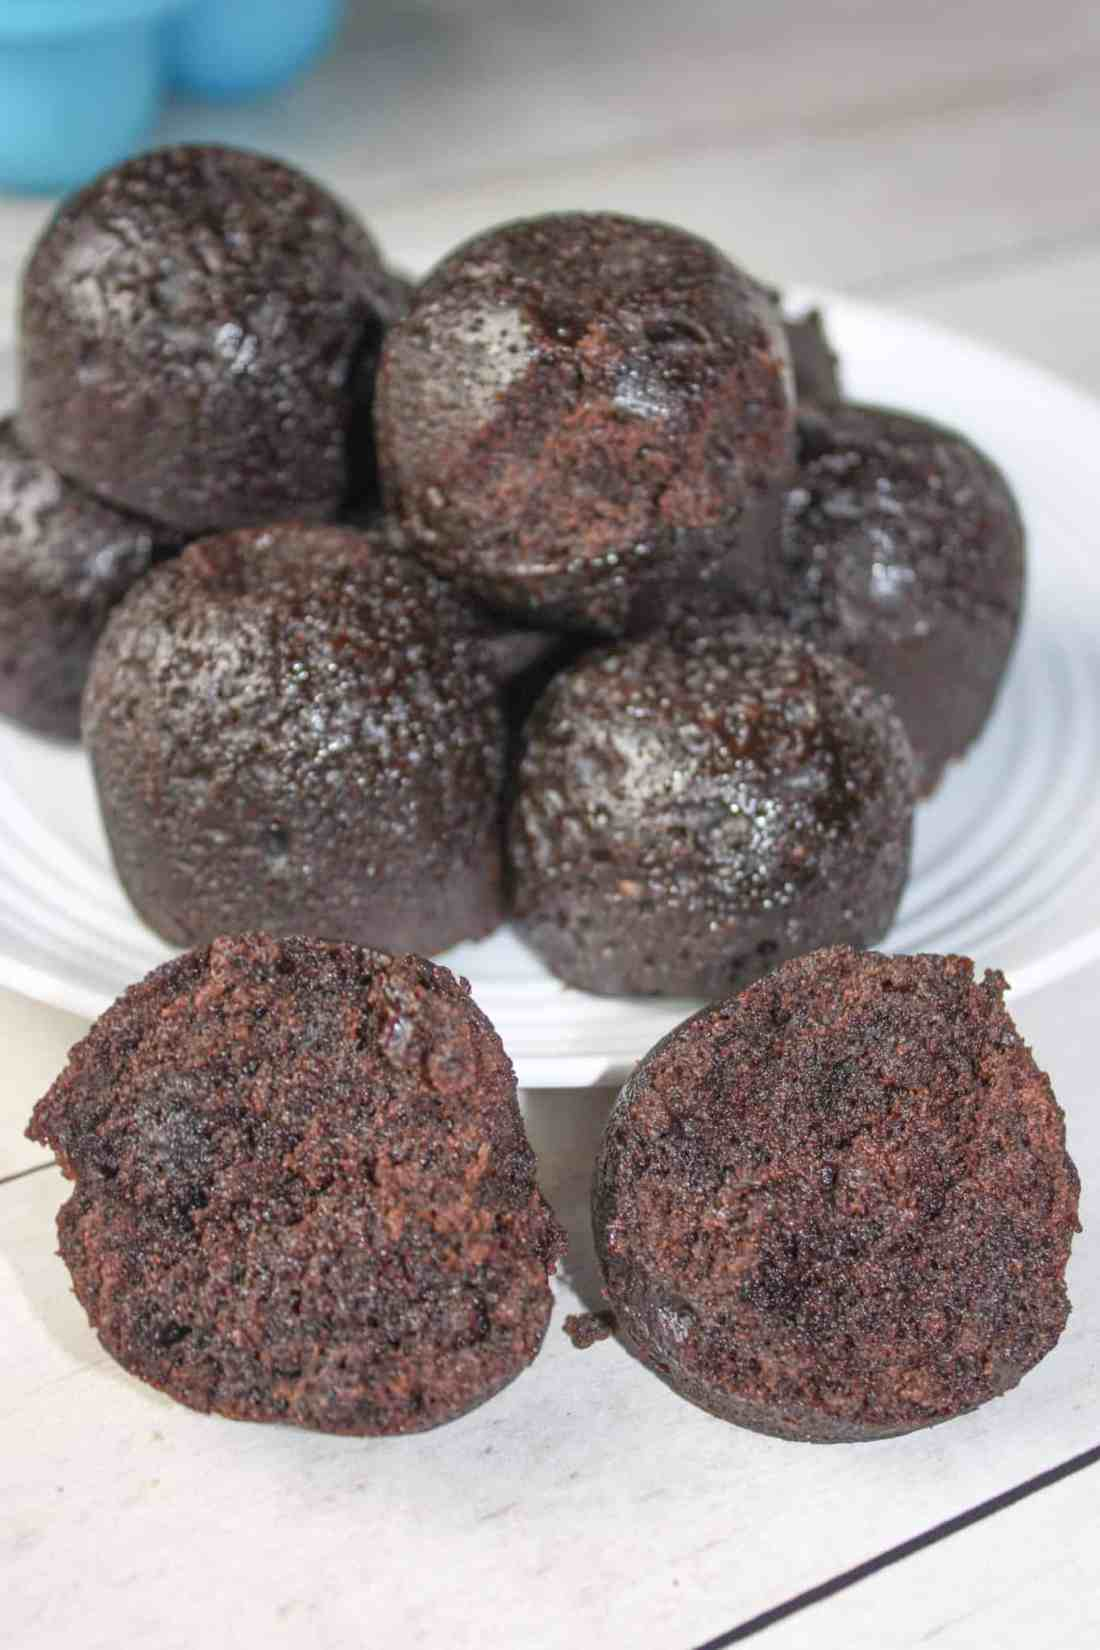 Instant Pot Brownies Bites are a delicious little treat. These moist, chocolate, pressure cooker bites will be a little slice of heaven for those that have to avoid gluten!